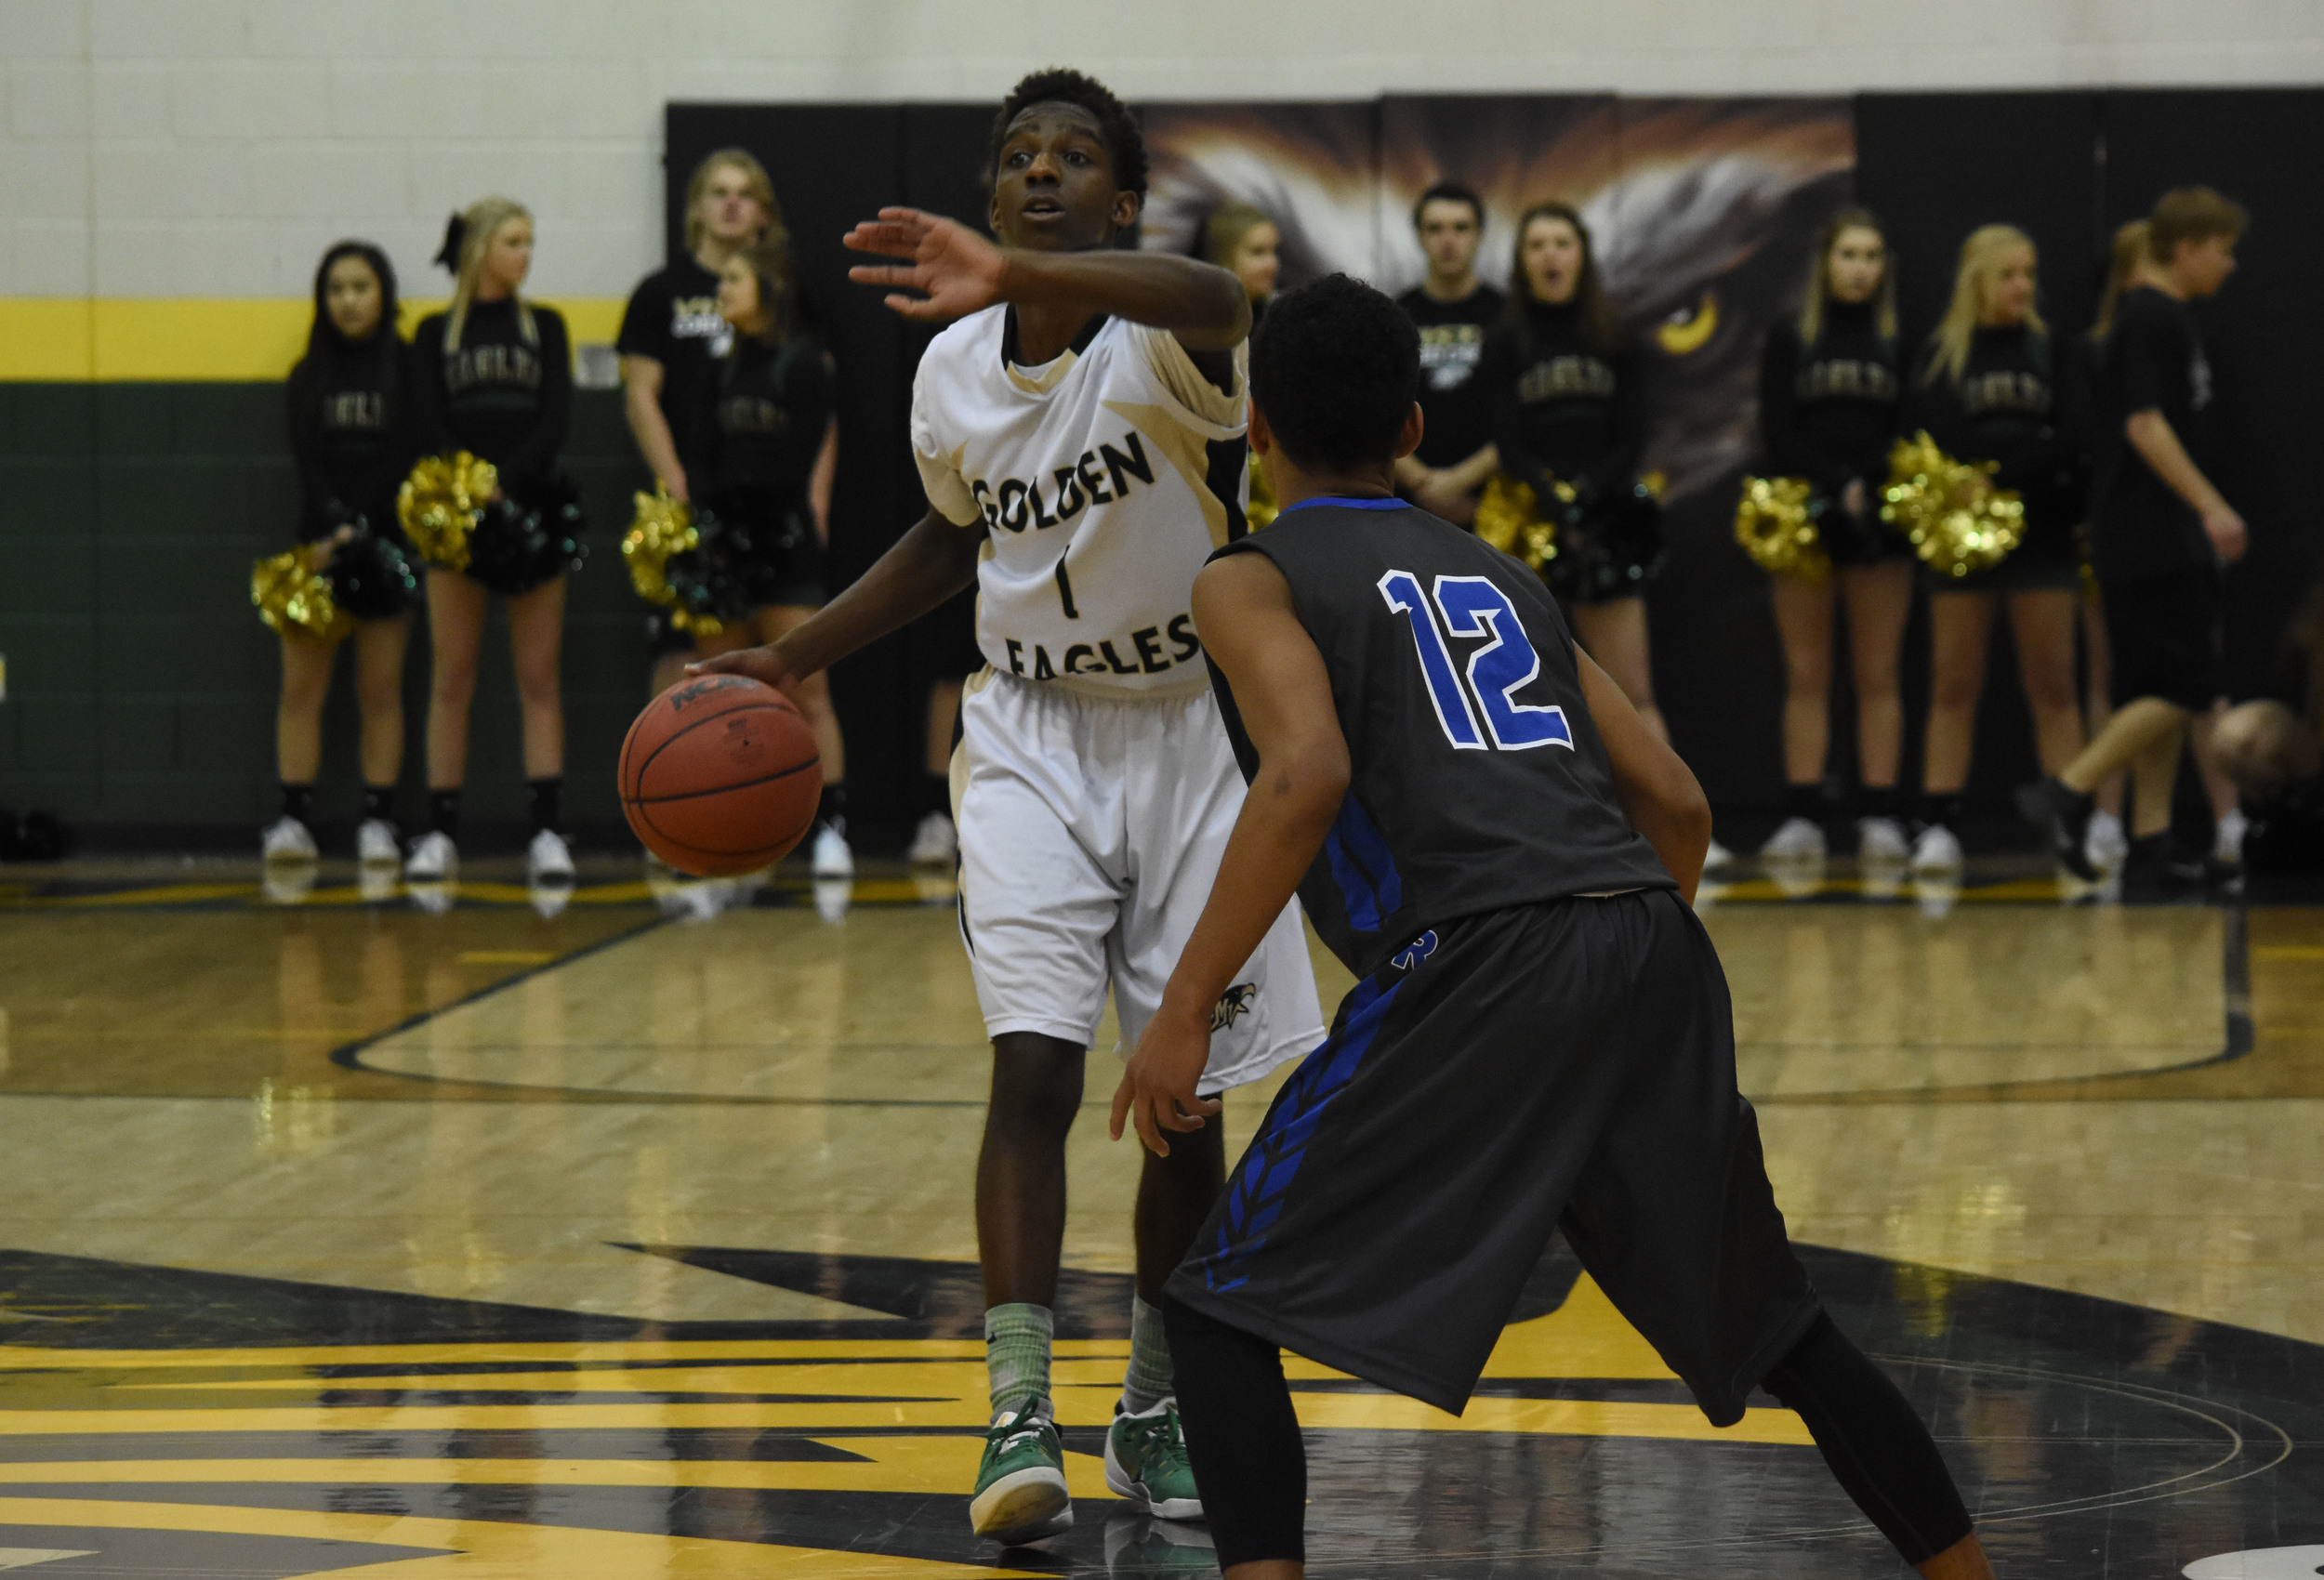 Junior Isaac Essien yells down the court at his teammates to set up a shot.